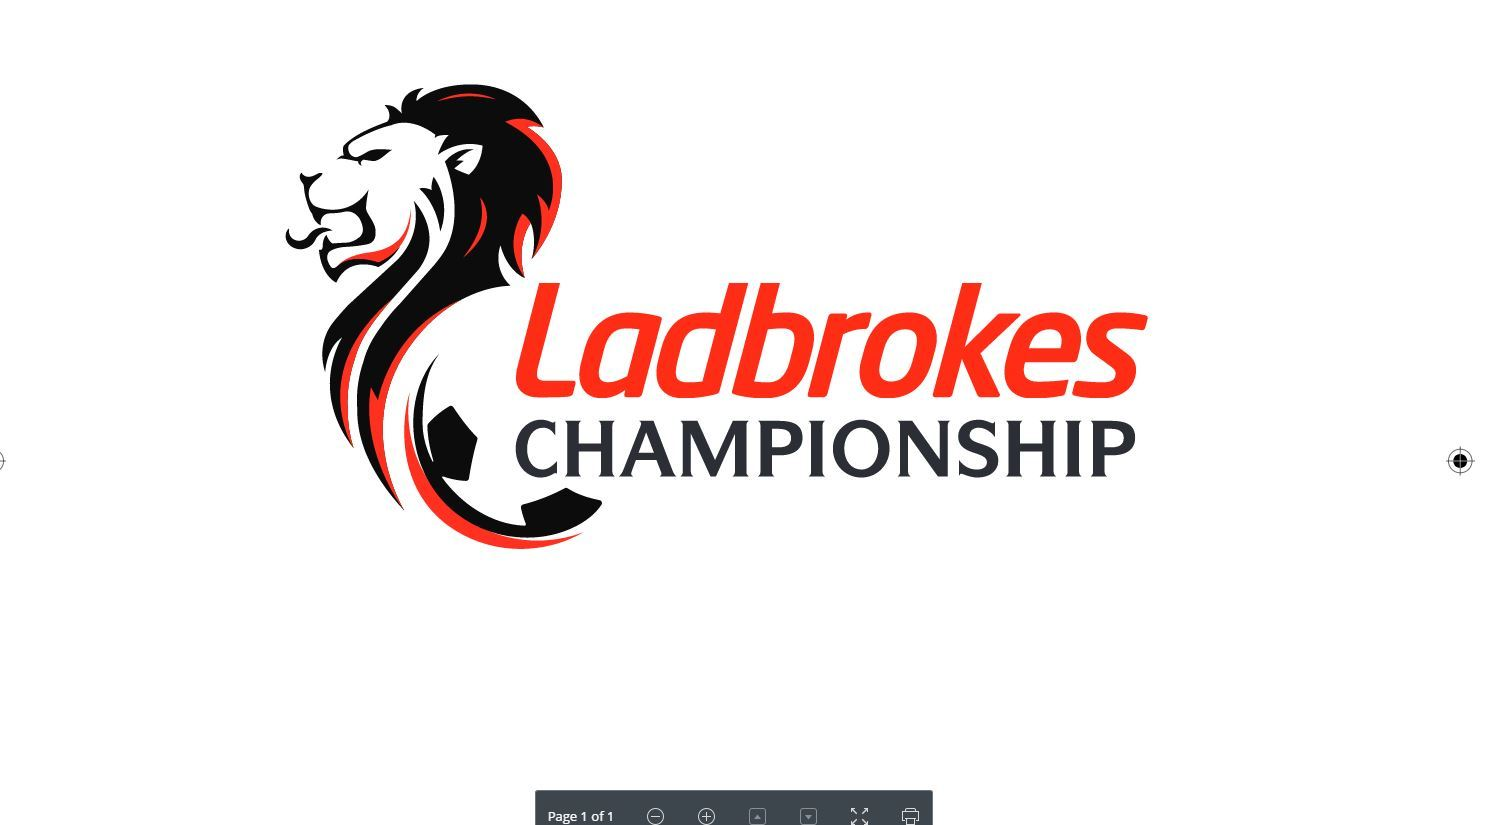 Championship fixtures have been announced